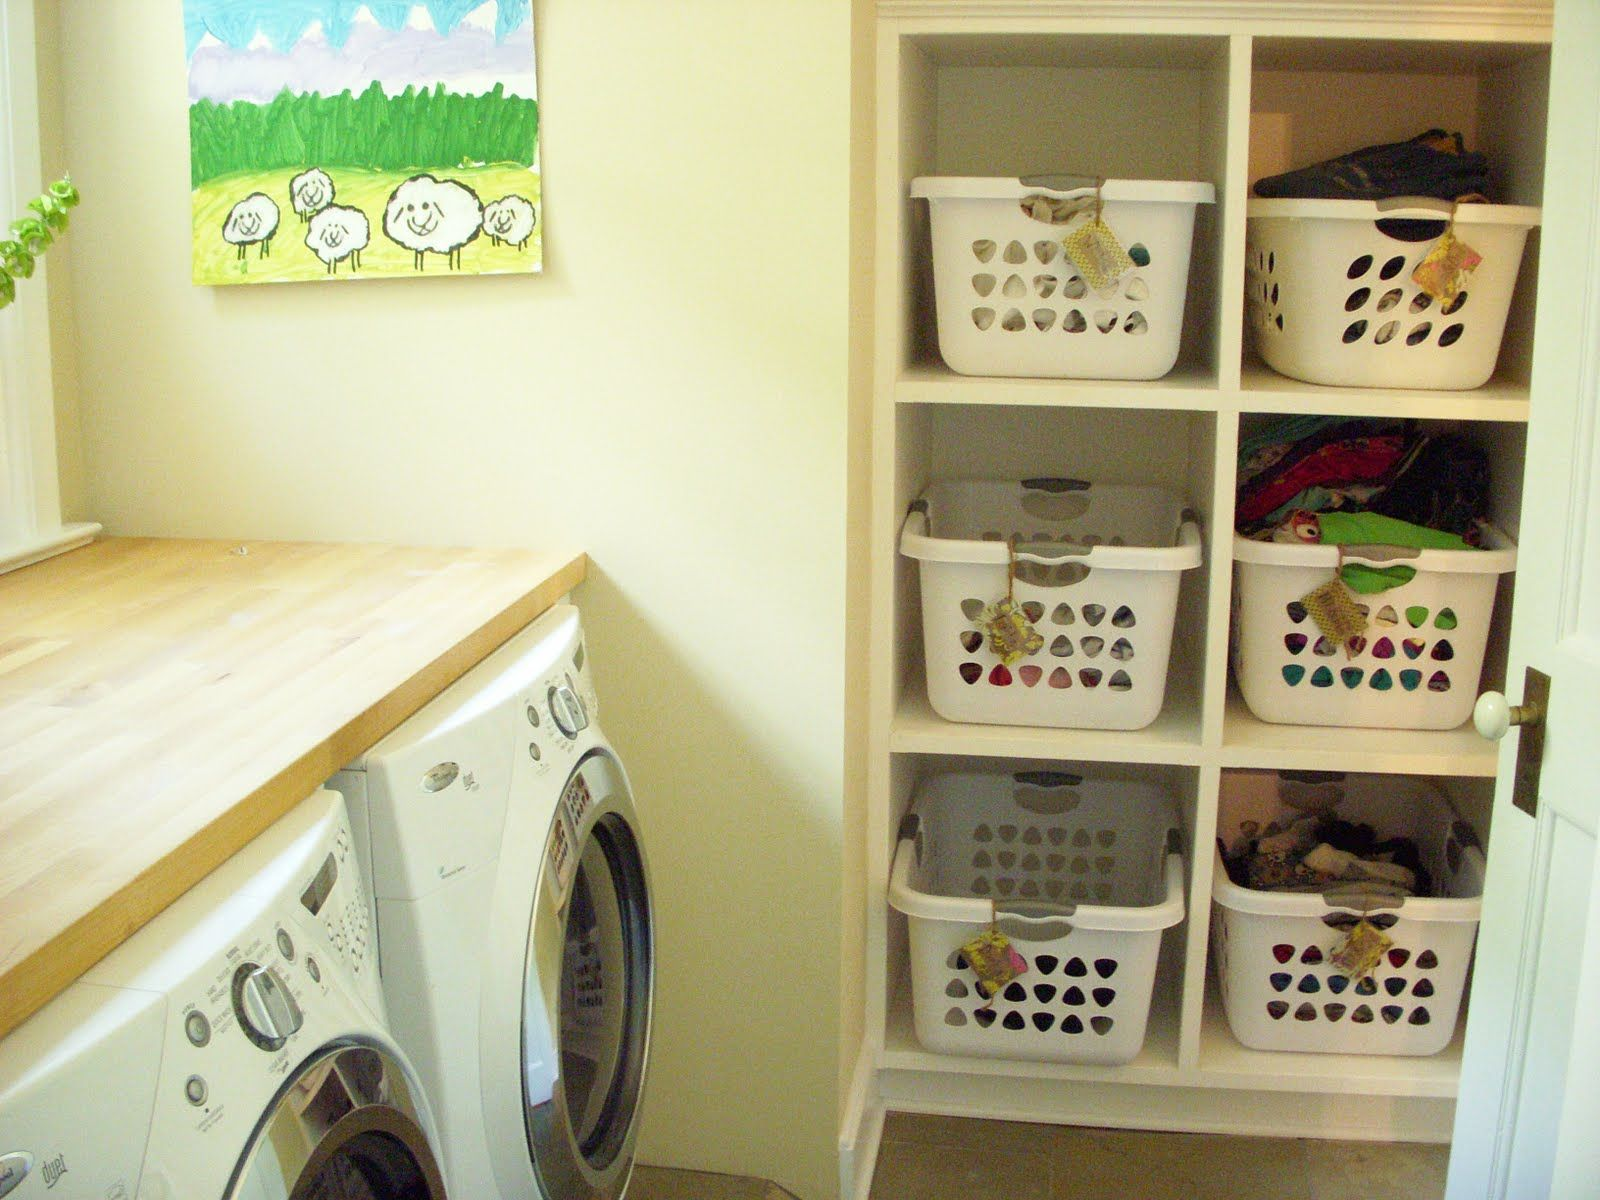 Furniture, Small Decoration Launndry Room With Washing Machine And ...